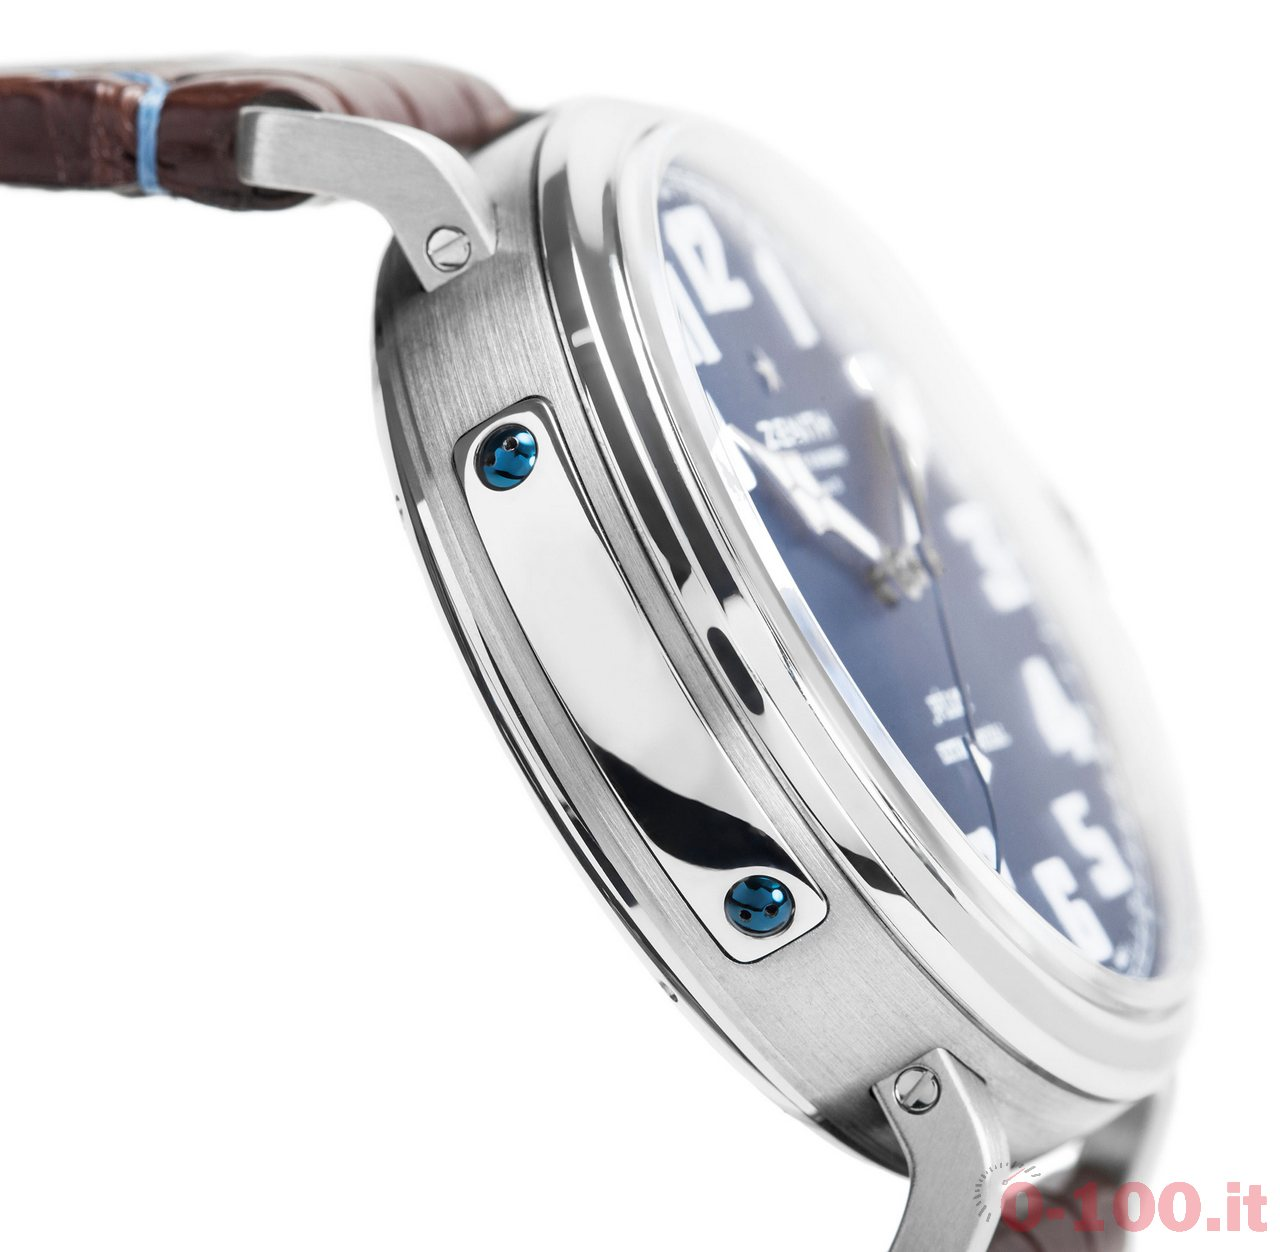 zenith-pilot-type-20-extra-special-blue-limited-edition-the-watch-gallery-prezzo-price_0-1005